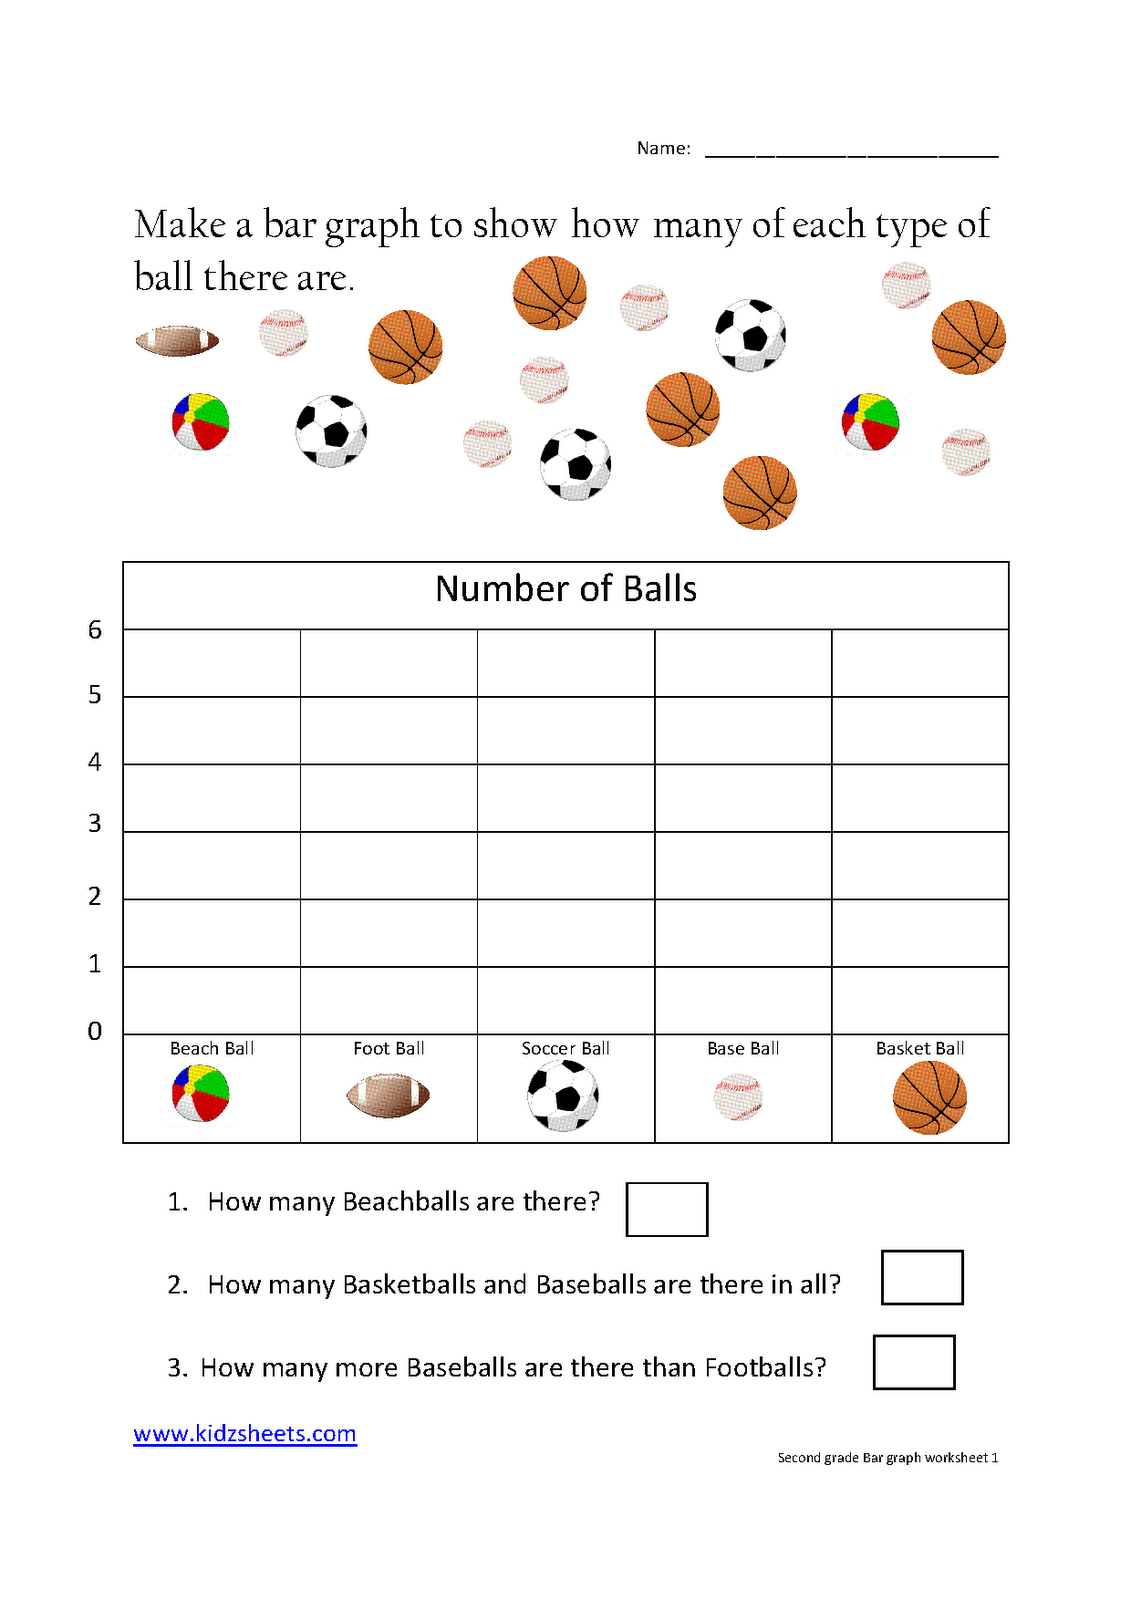 Free Printable Bar Graph Worksheets For 2nd Grade